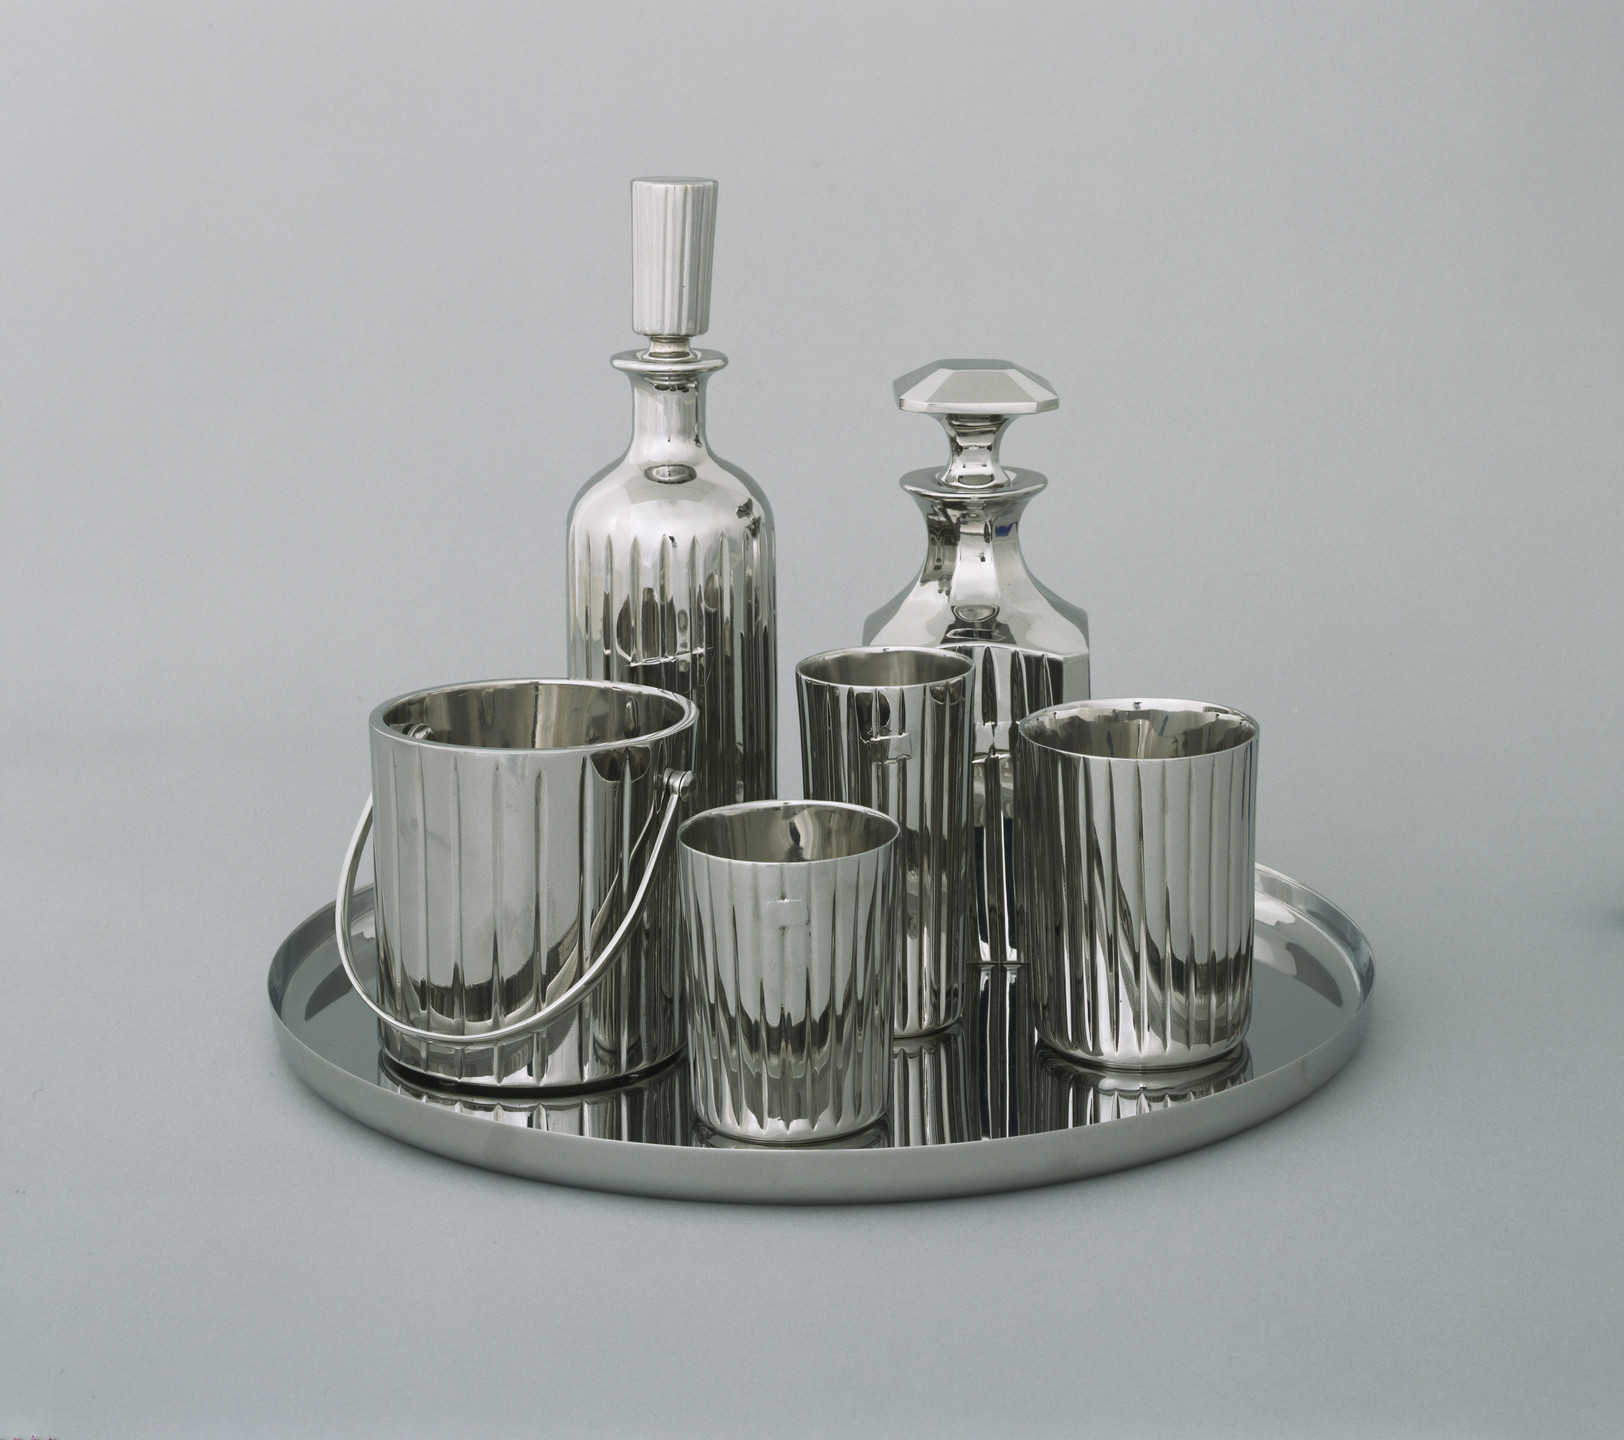 Jeff Koons. Baccarat Crystal Set. 1986